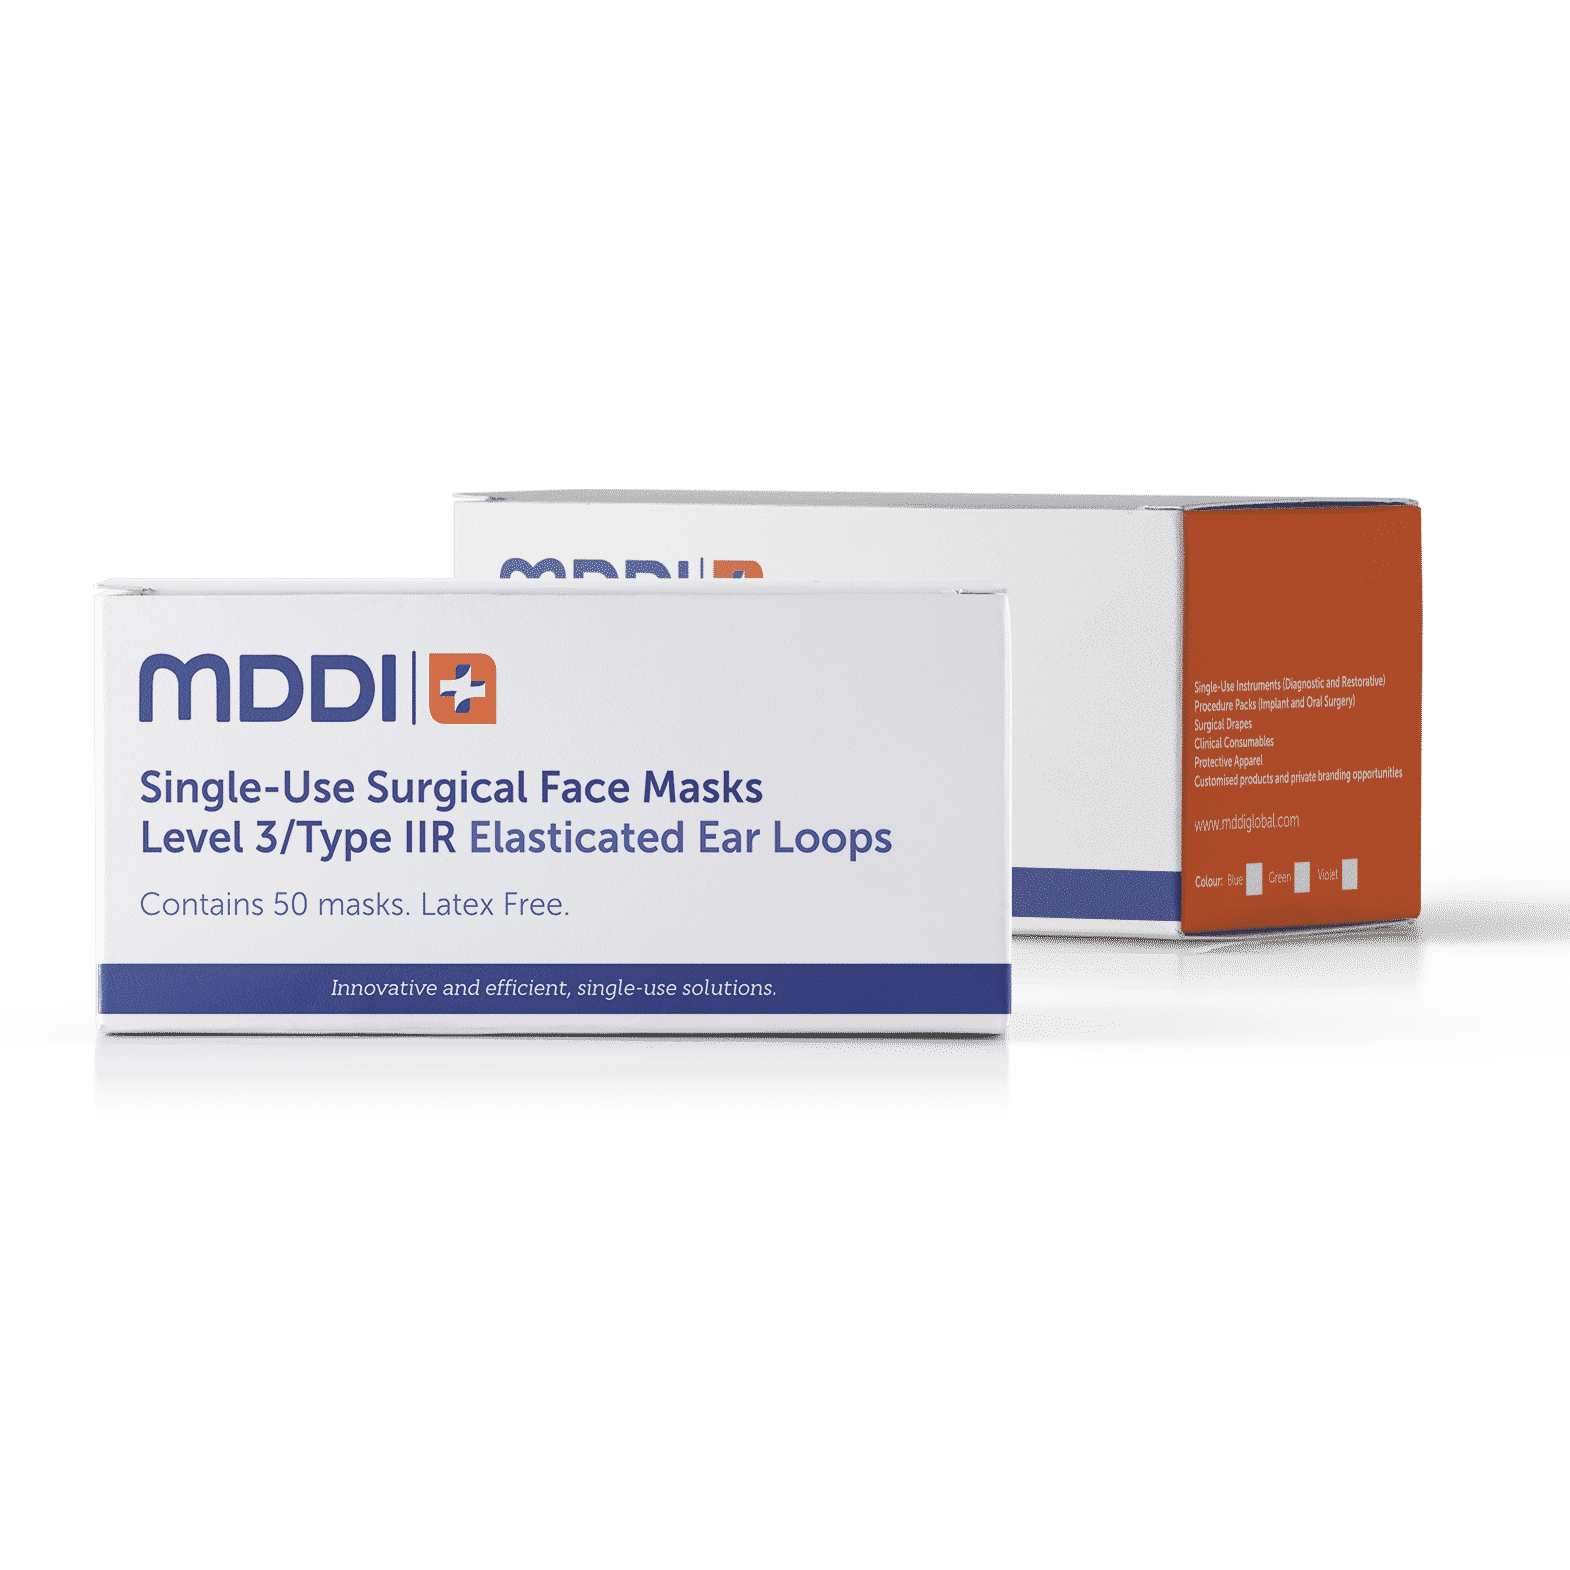 MDDI Surgical Face masks